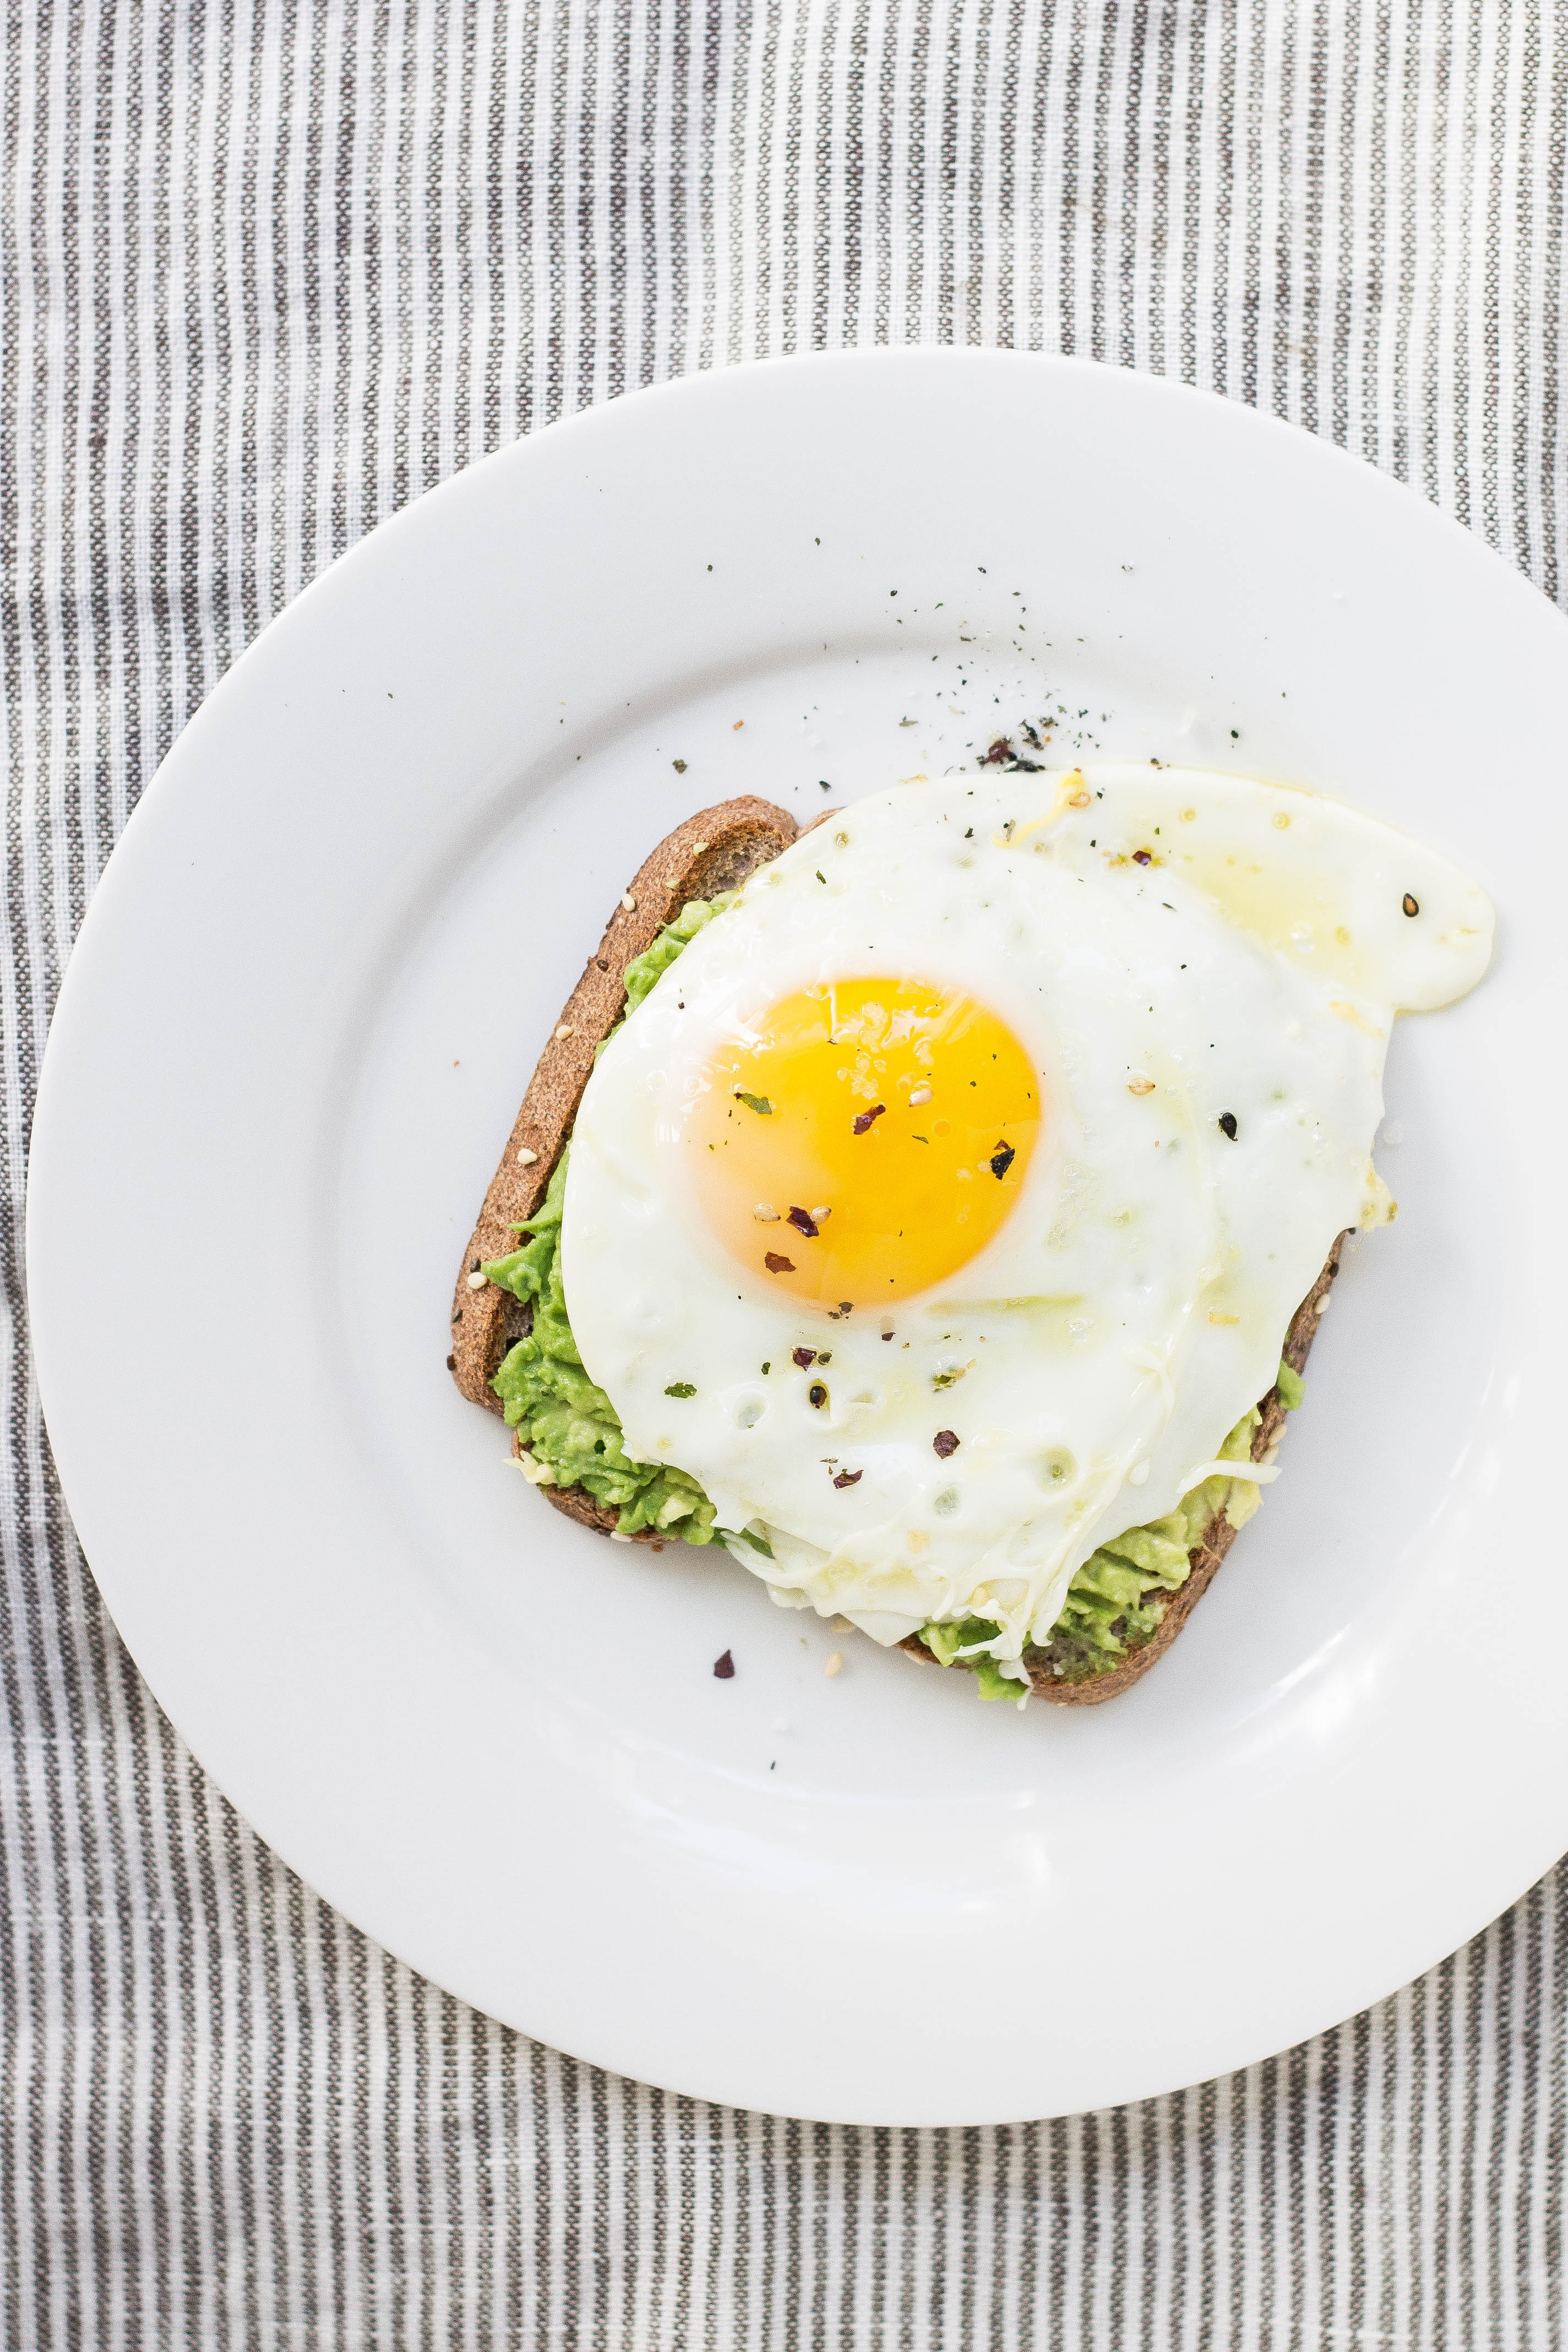 A sunny side up egg on a piece of toast.